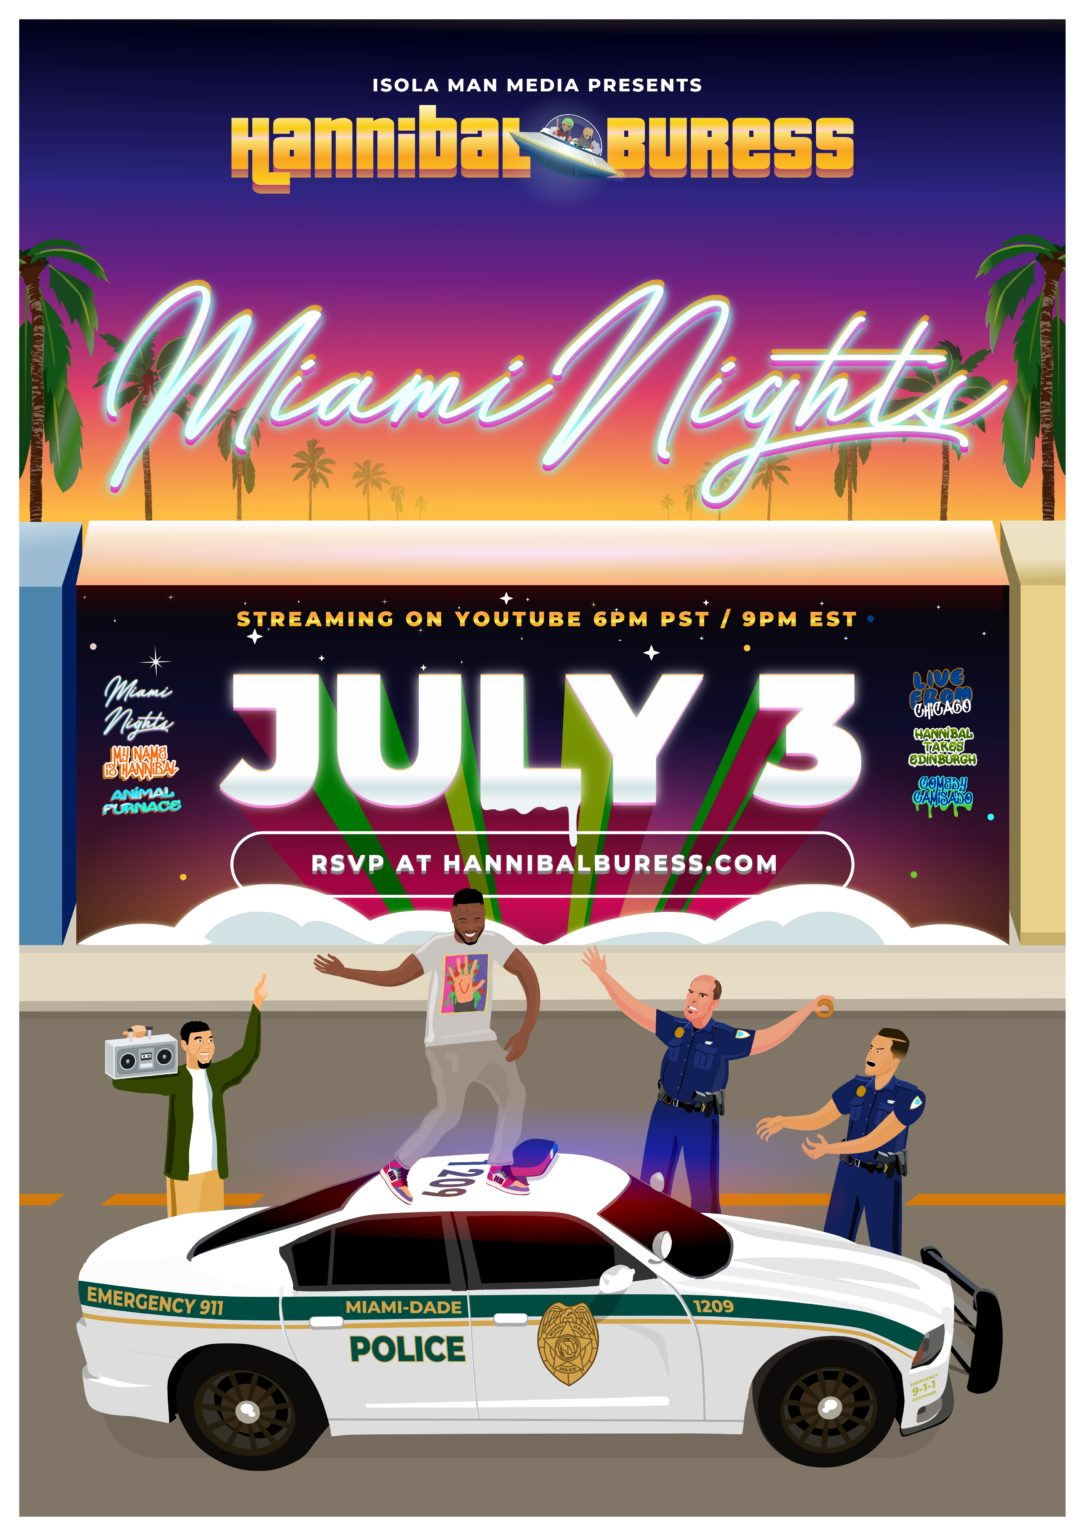 hannibal buress miami nights comeday special poster